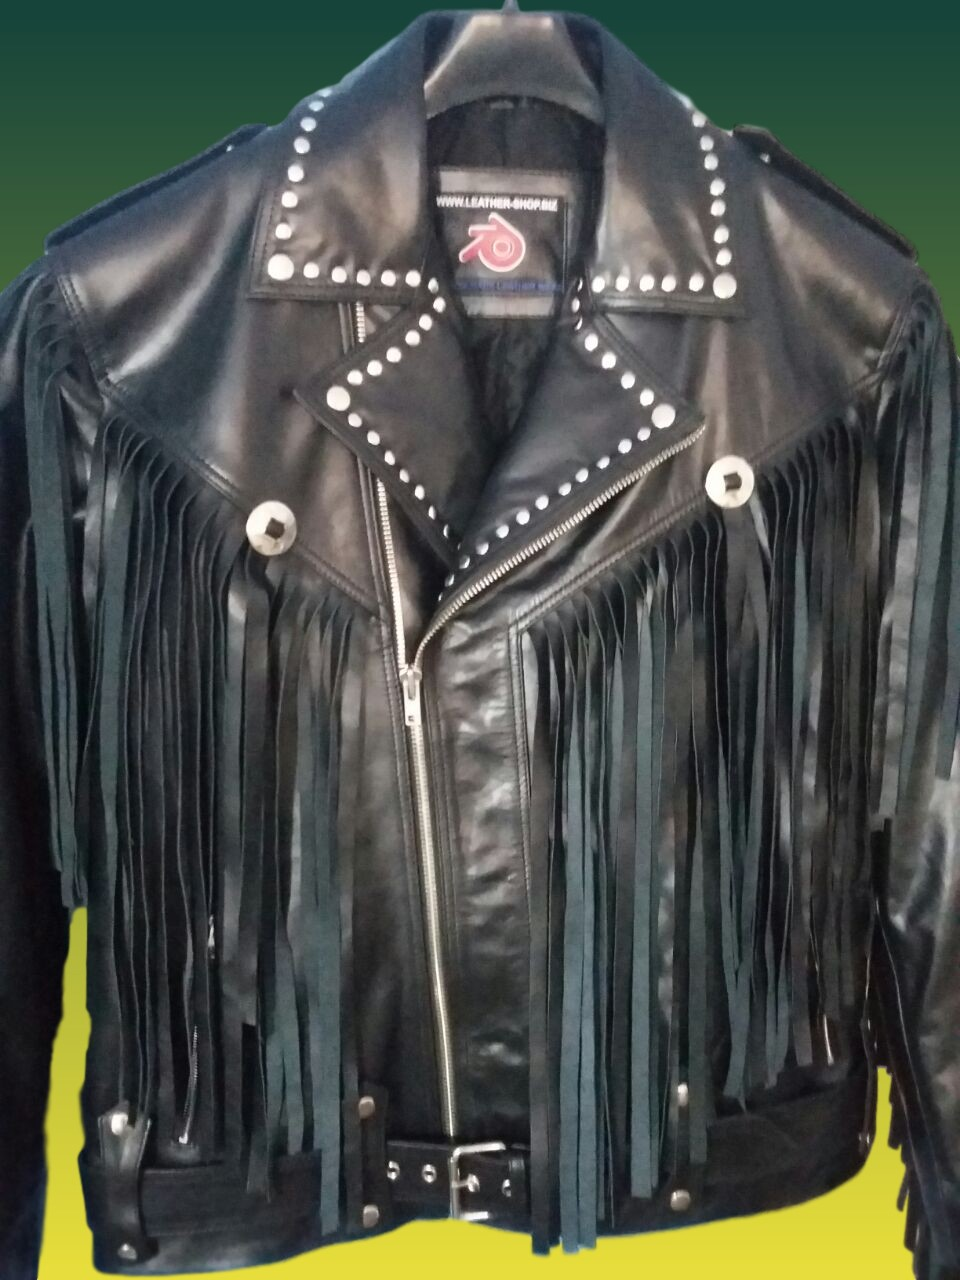 leather-jacket-with-fringe-and-studs-custom-made-style-mlfj210-in-8-colors-and-all-sizes-www.leather-shop.biz-jacket-front-pic.jpg